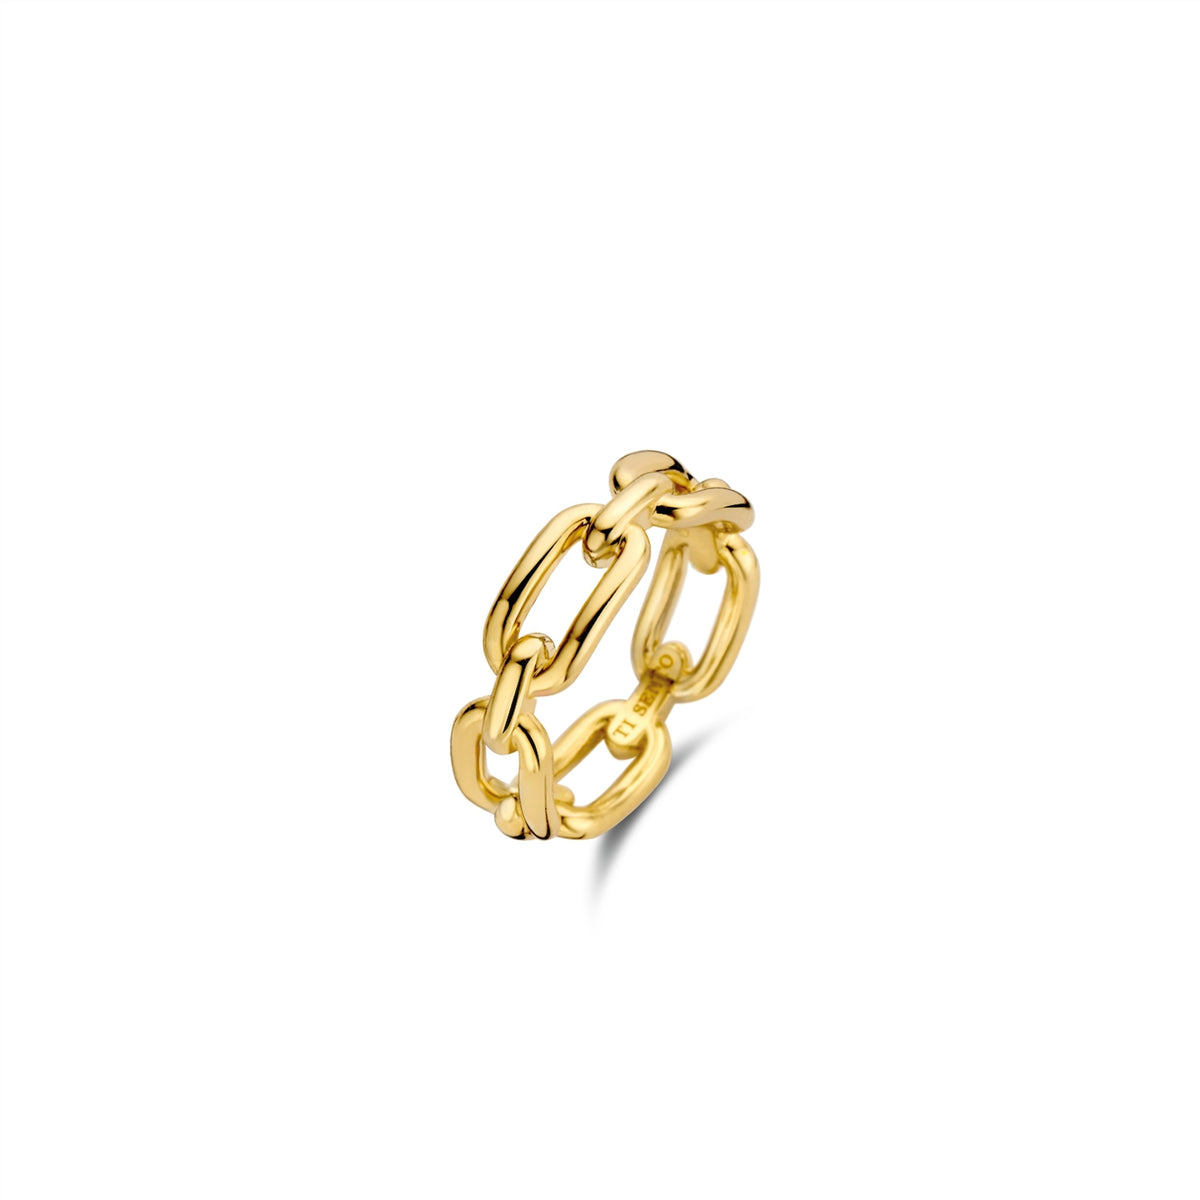 TI SENTO Sterling Silver Gold Tone Chain Link Ring